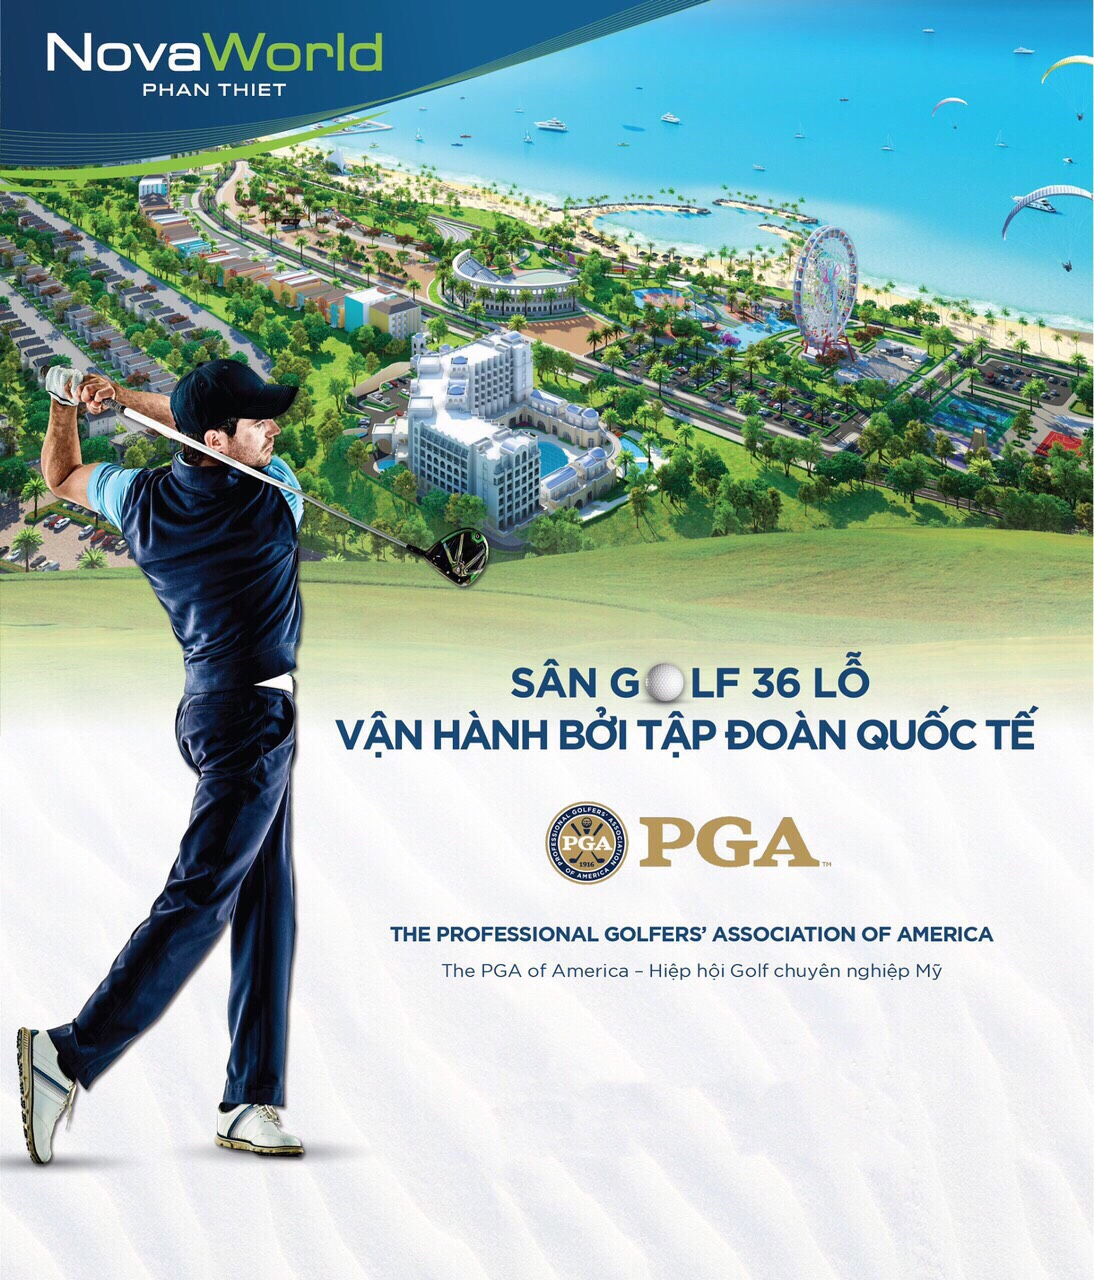 Novaland Phan Thiet Golf Course (Binh Thuan) Expected to operate in 2021